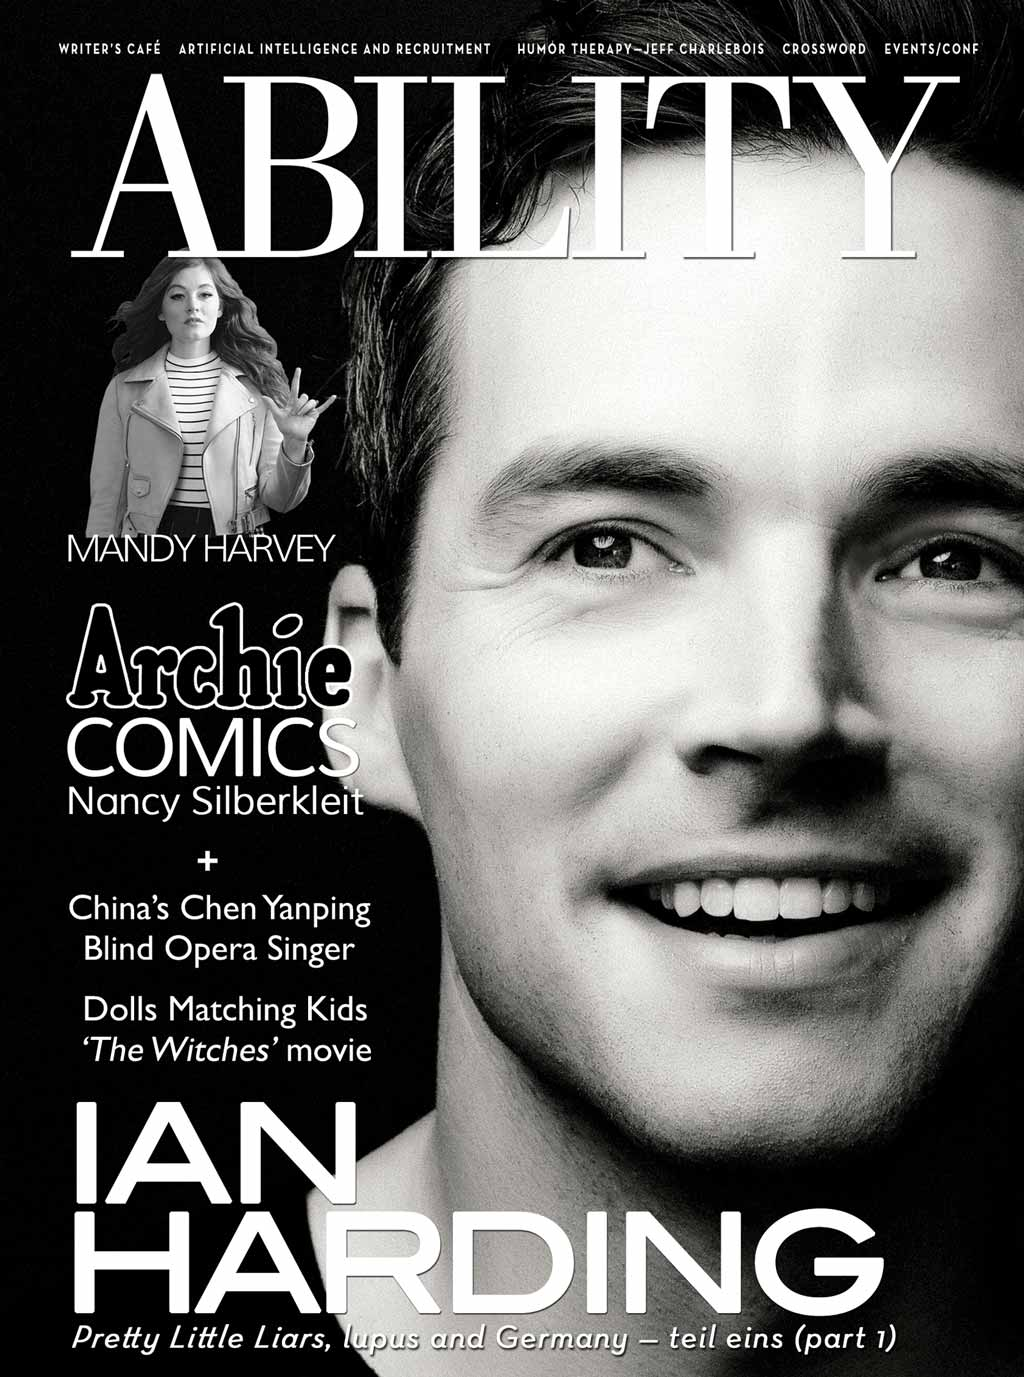 Ian Harding Issue